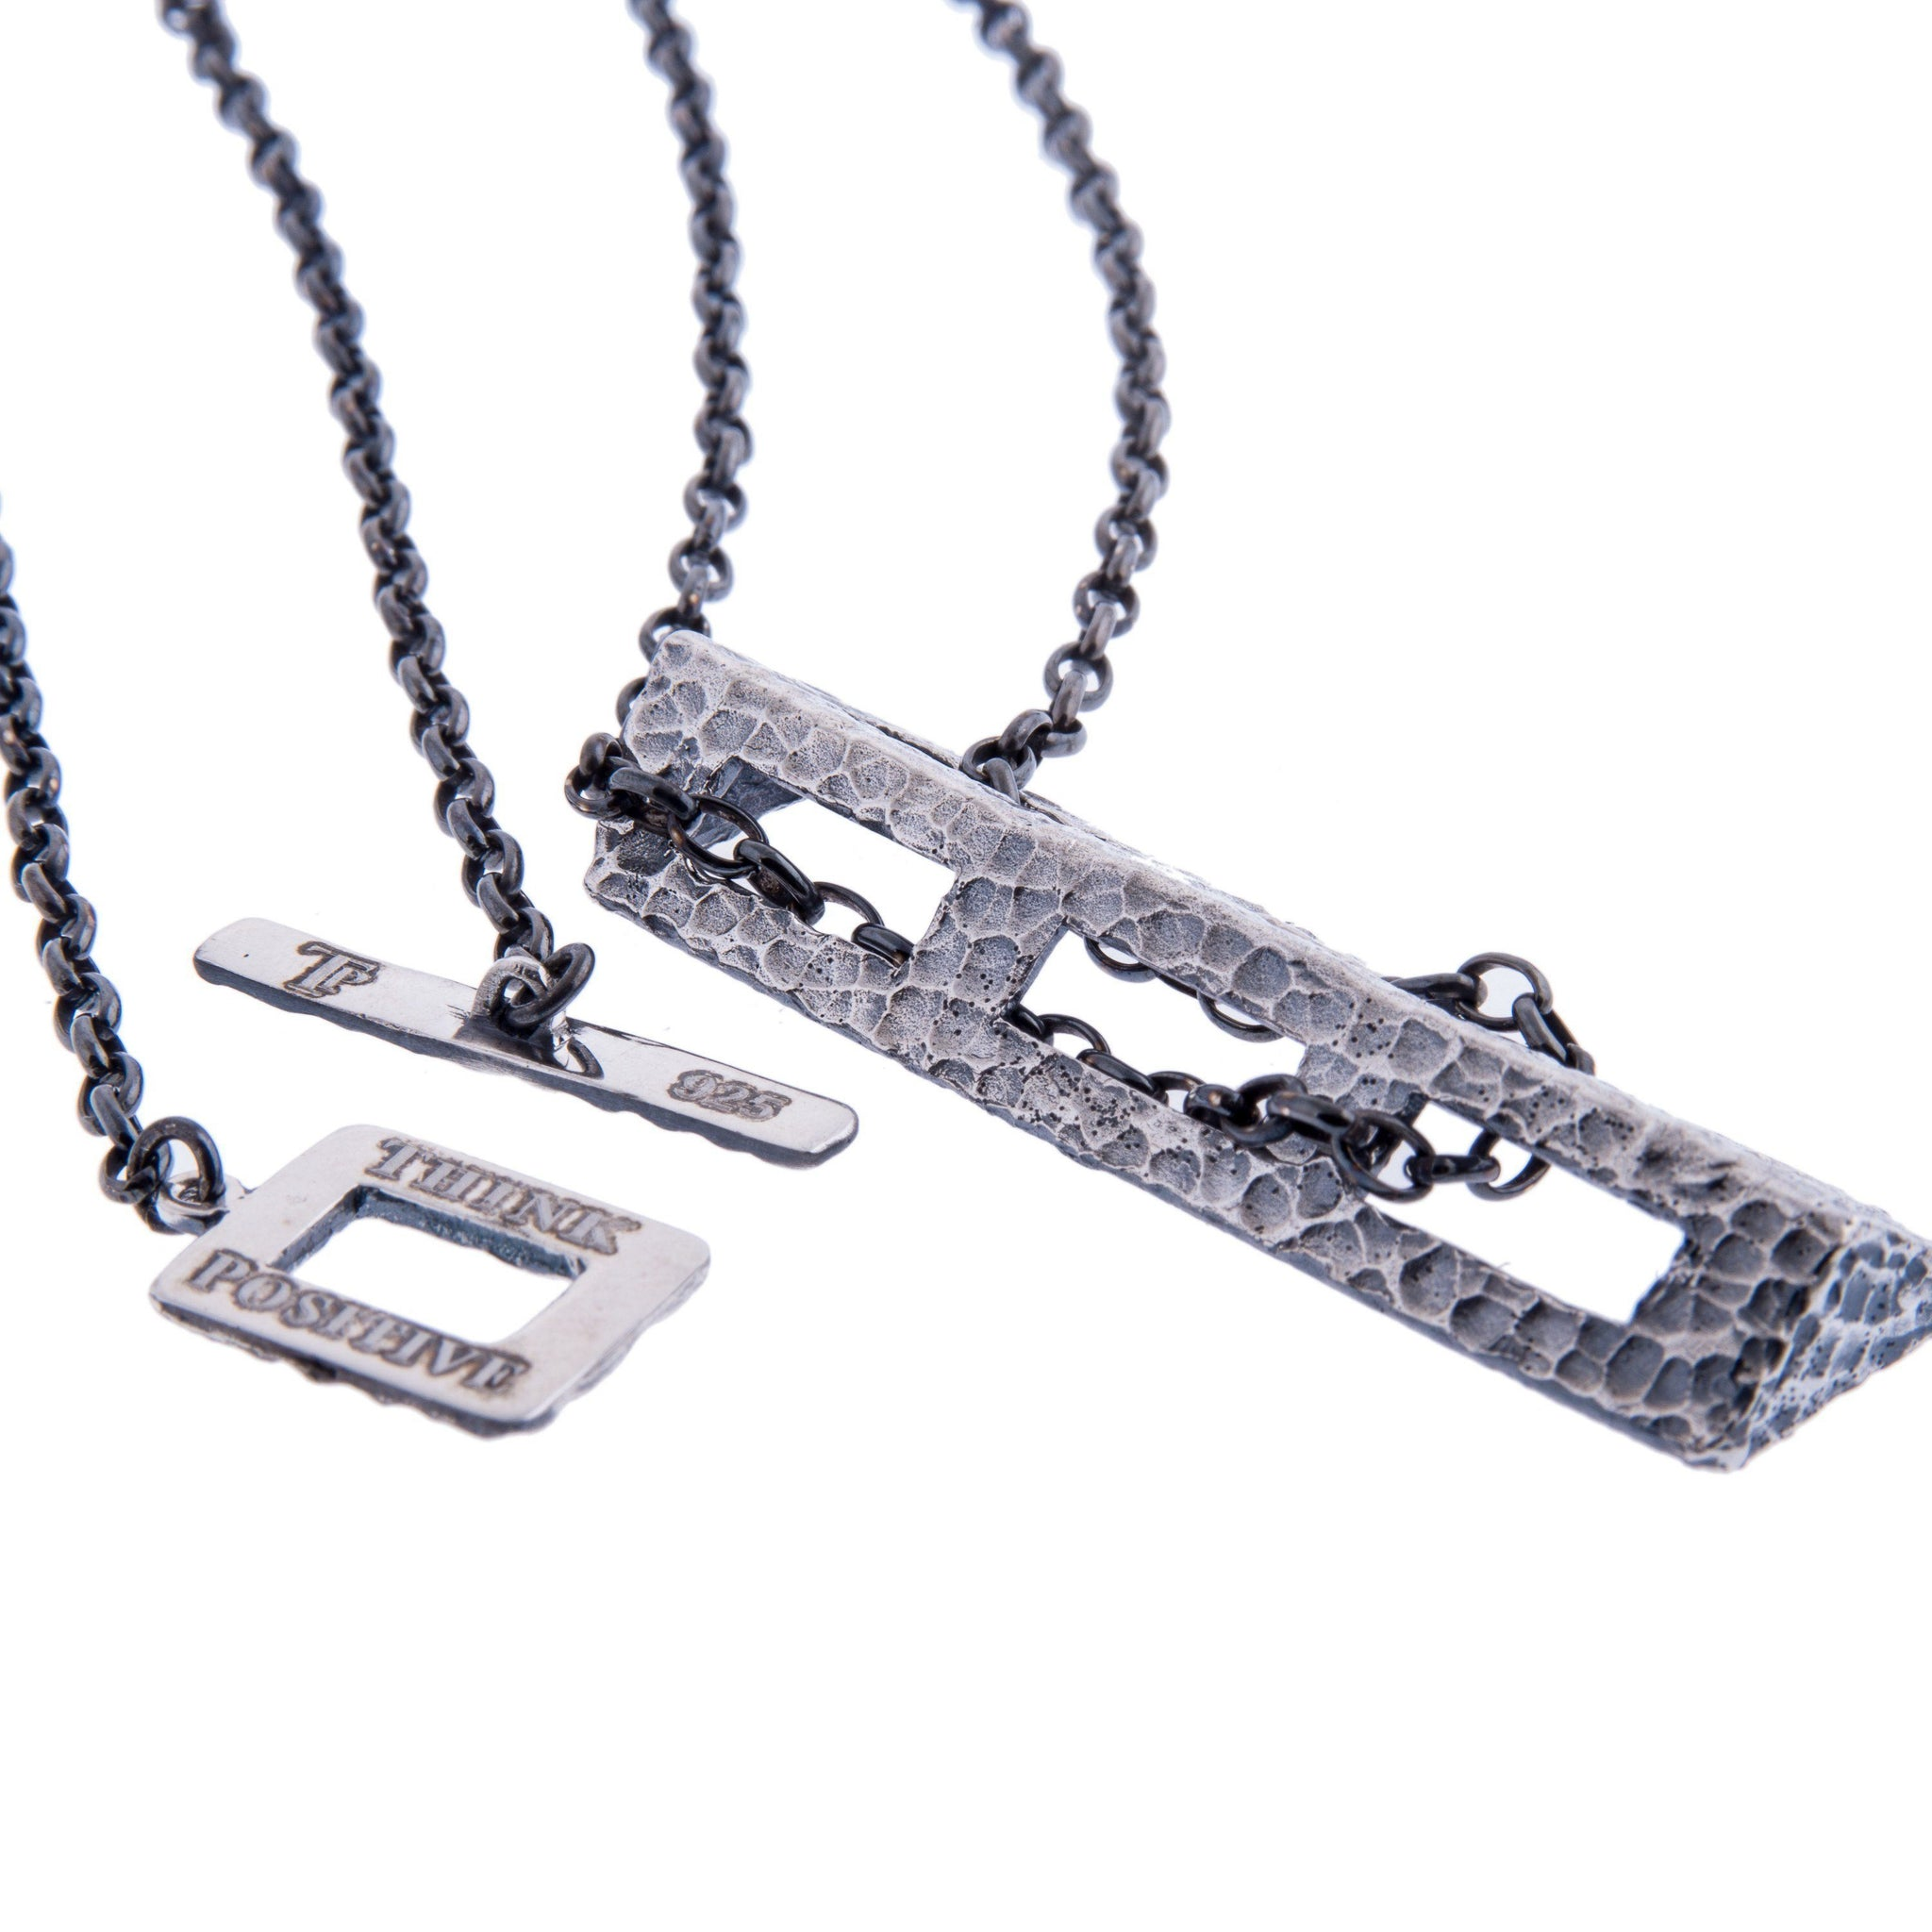 Silver chain pendant men necklace think positive sterling silver mens necklaces hammered silver chain pendant men necklace mozeypictures Image collections